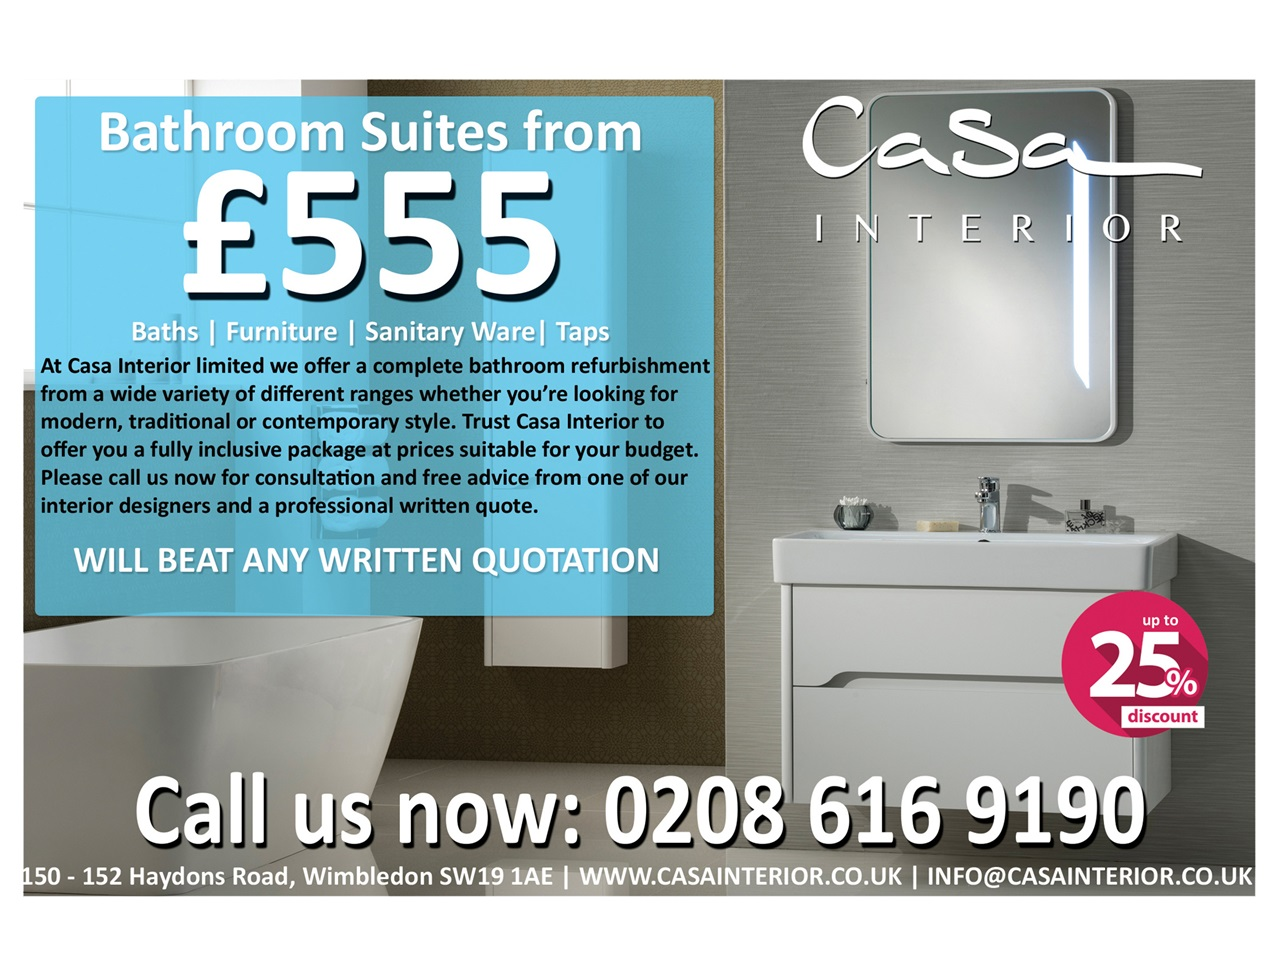 Home - www.wimbledonbathrooms.co.uk